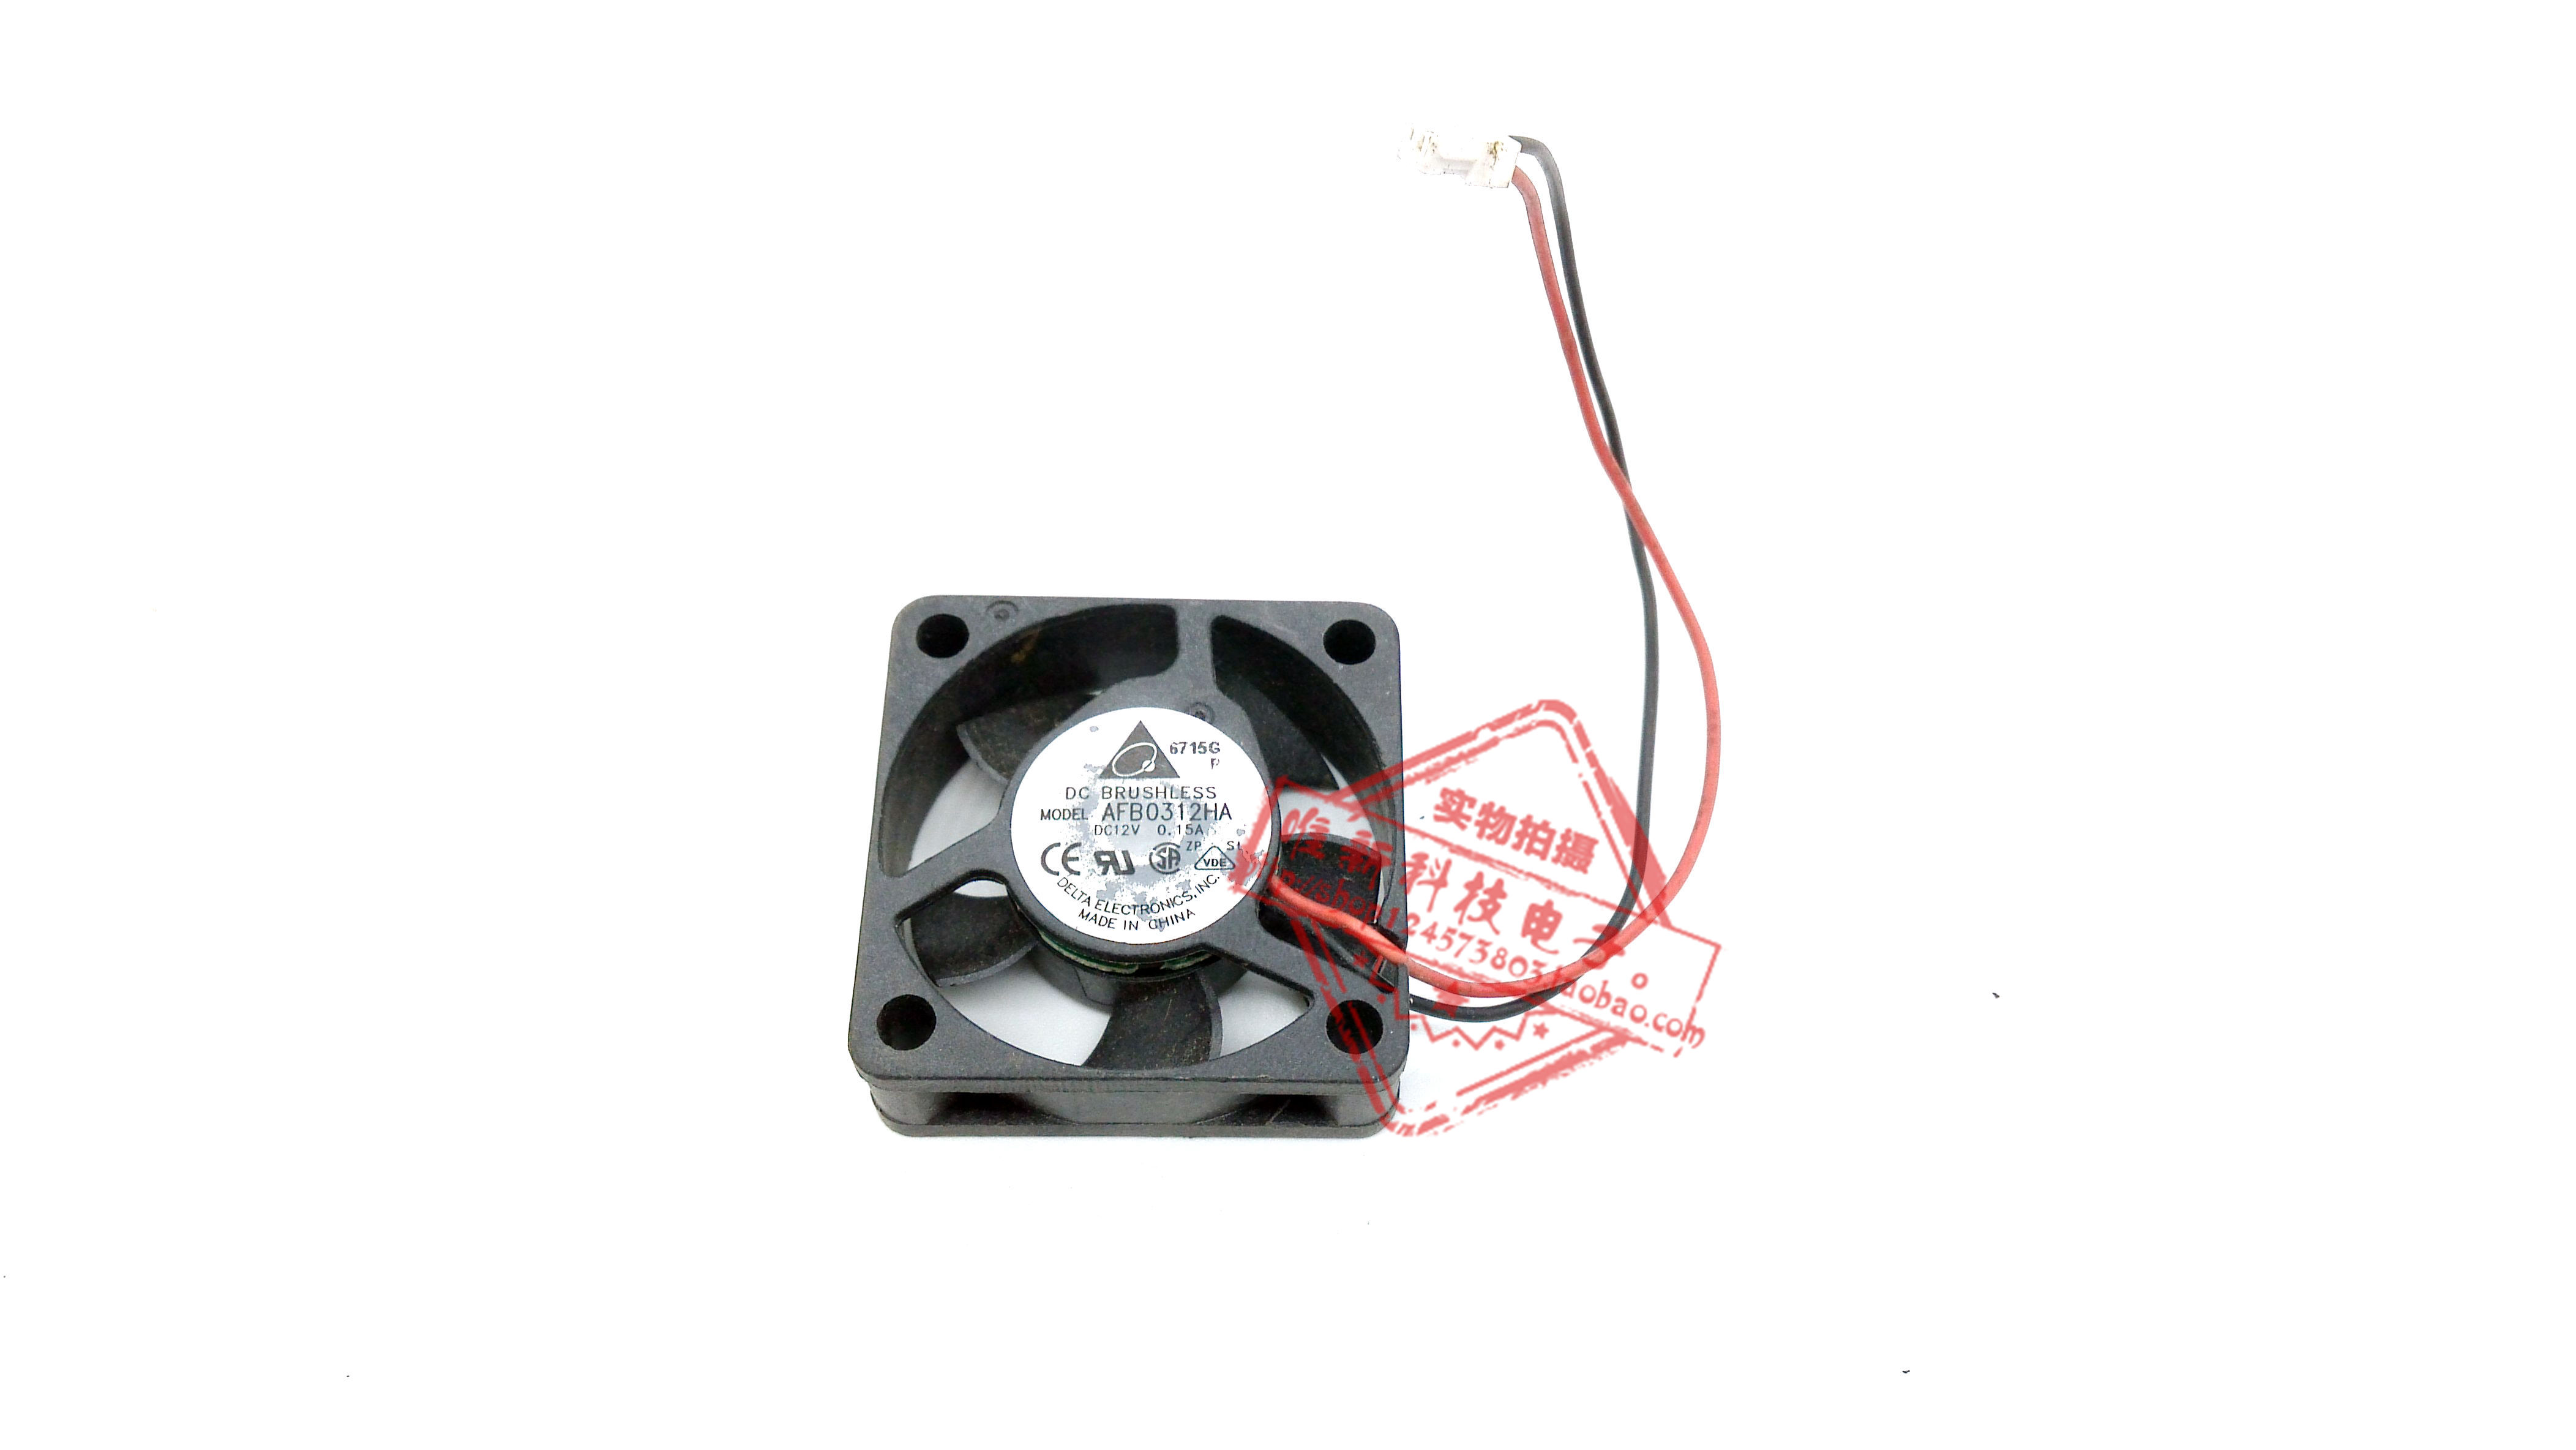 AFB0312HA DC12V 0.15A Delta DELTA 3010 ball cooling fan